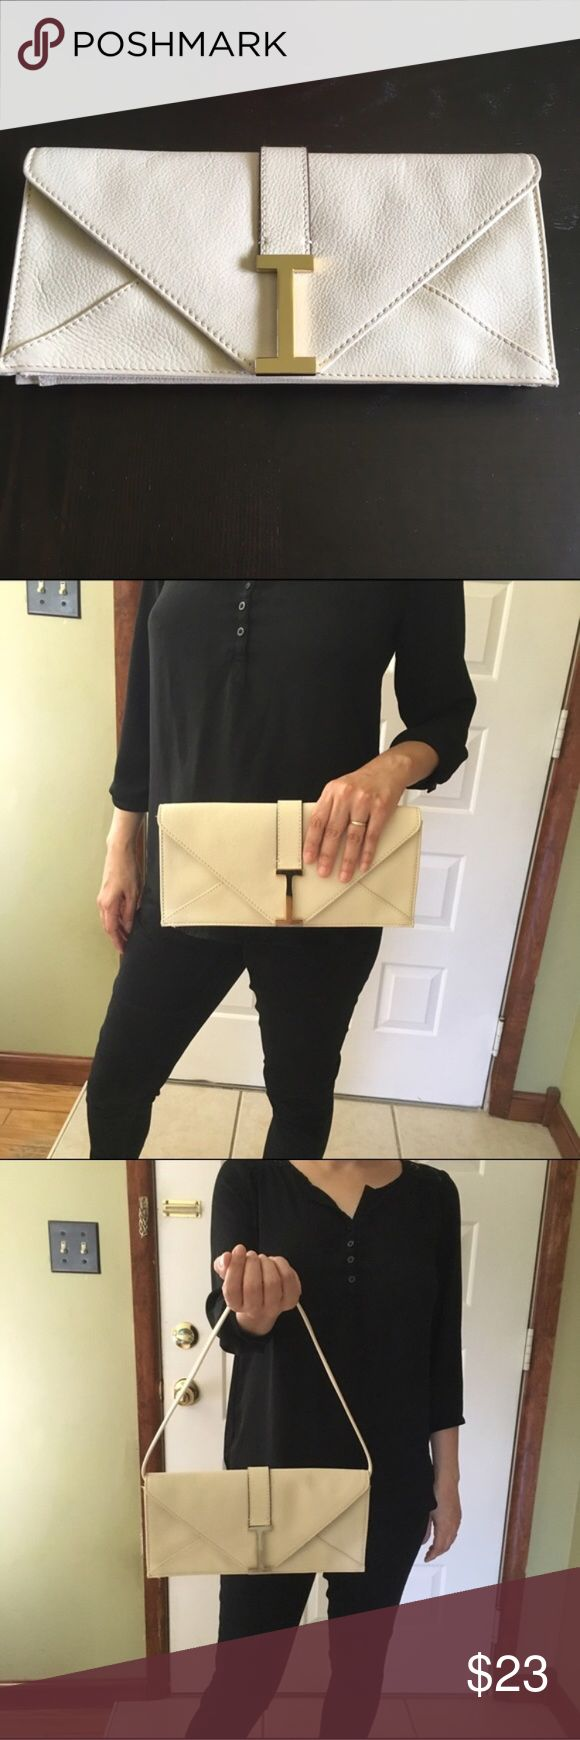 Cream and Gold Clutch Bag Like new condition. Beautiful bag. Open to offers! No trades. Isaac Mizrahi Bags